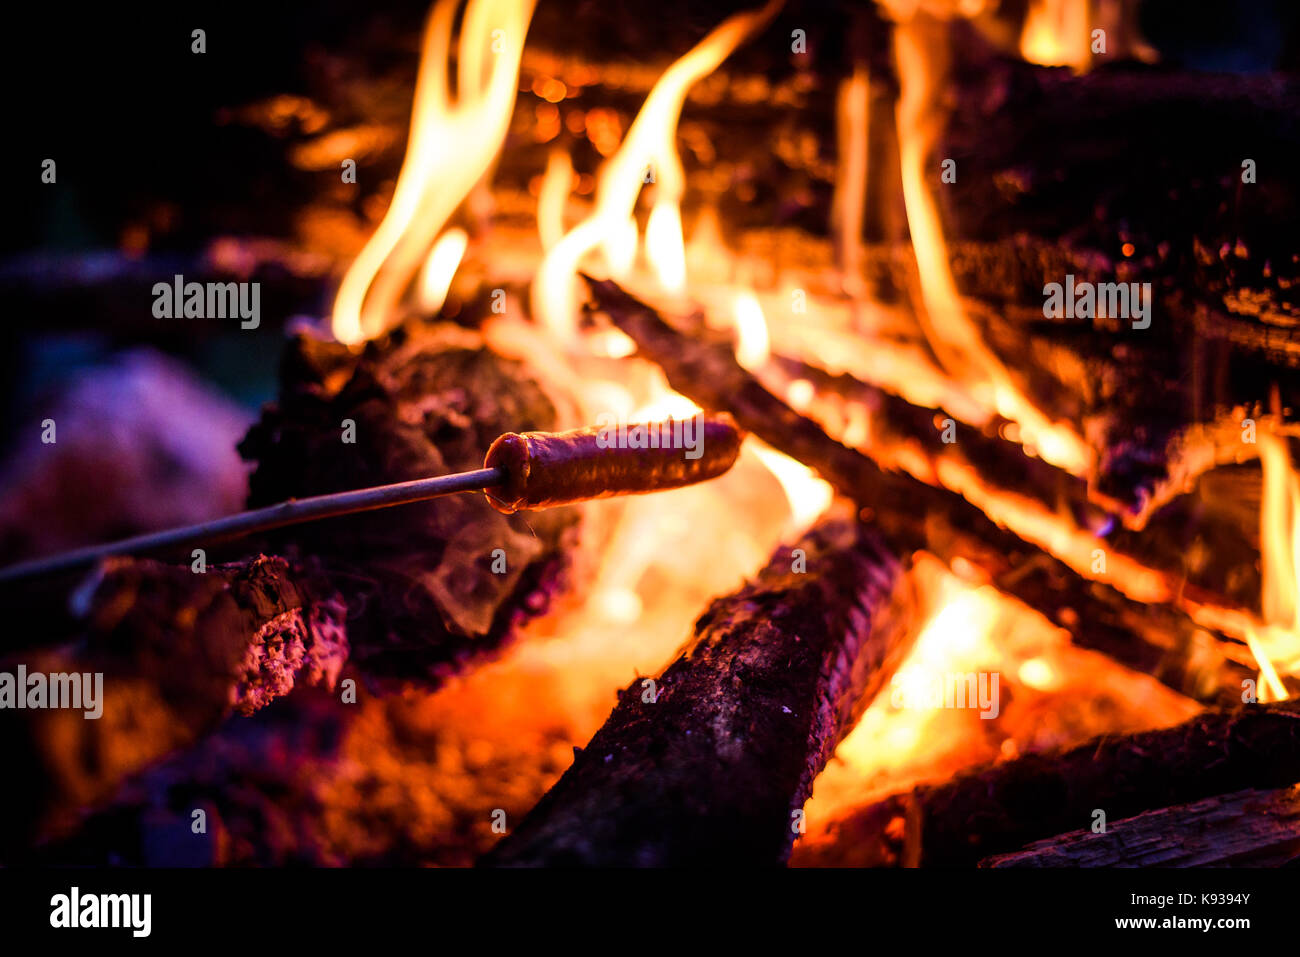 Making and cooking Hot dog sausages over open camp fire. Grilling food over flames of bonfire on wooden branch Stock Photo